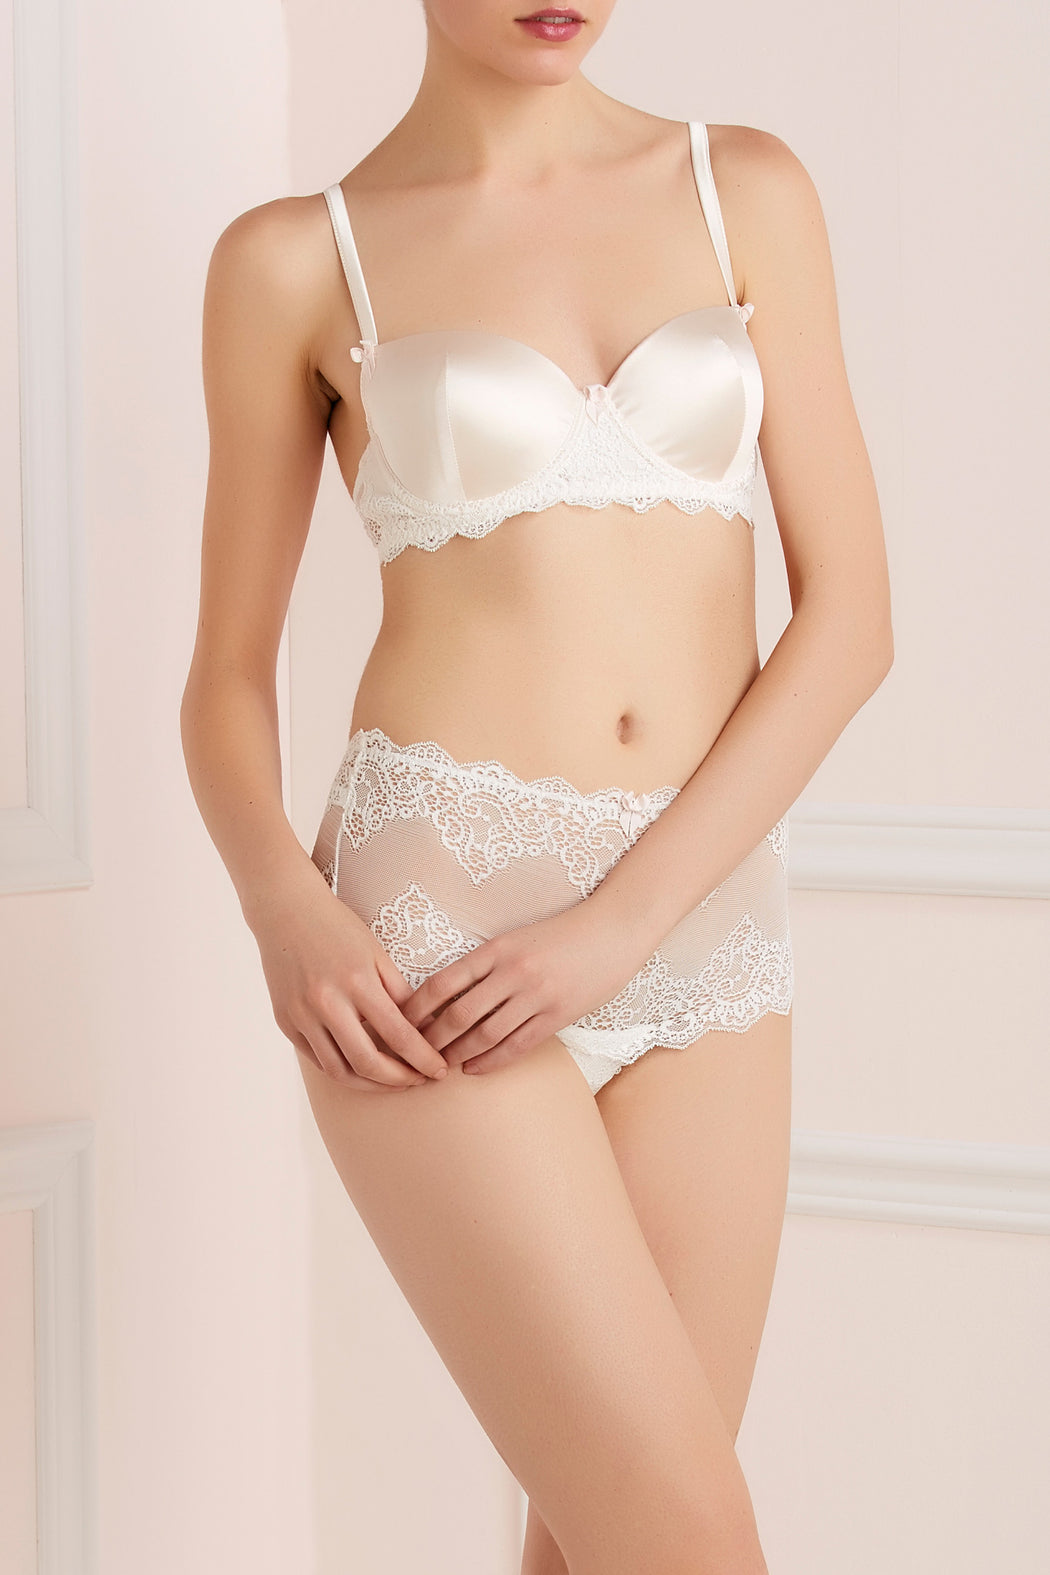 Mr Whippy white silk and lace padded bra by Mimi Holliday workingirls lingerie